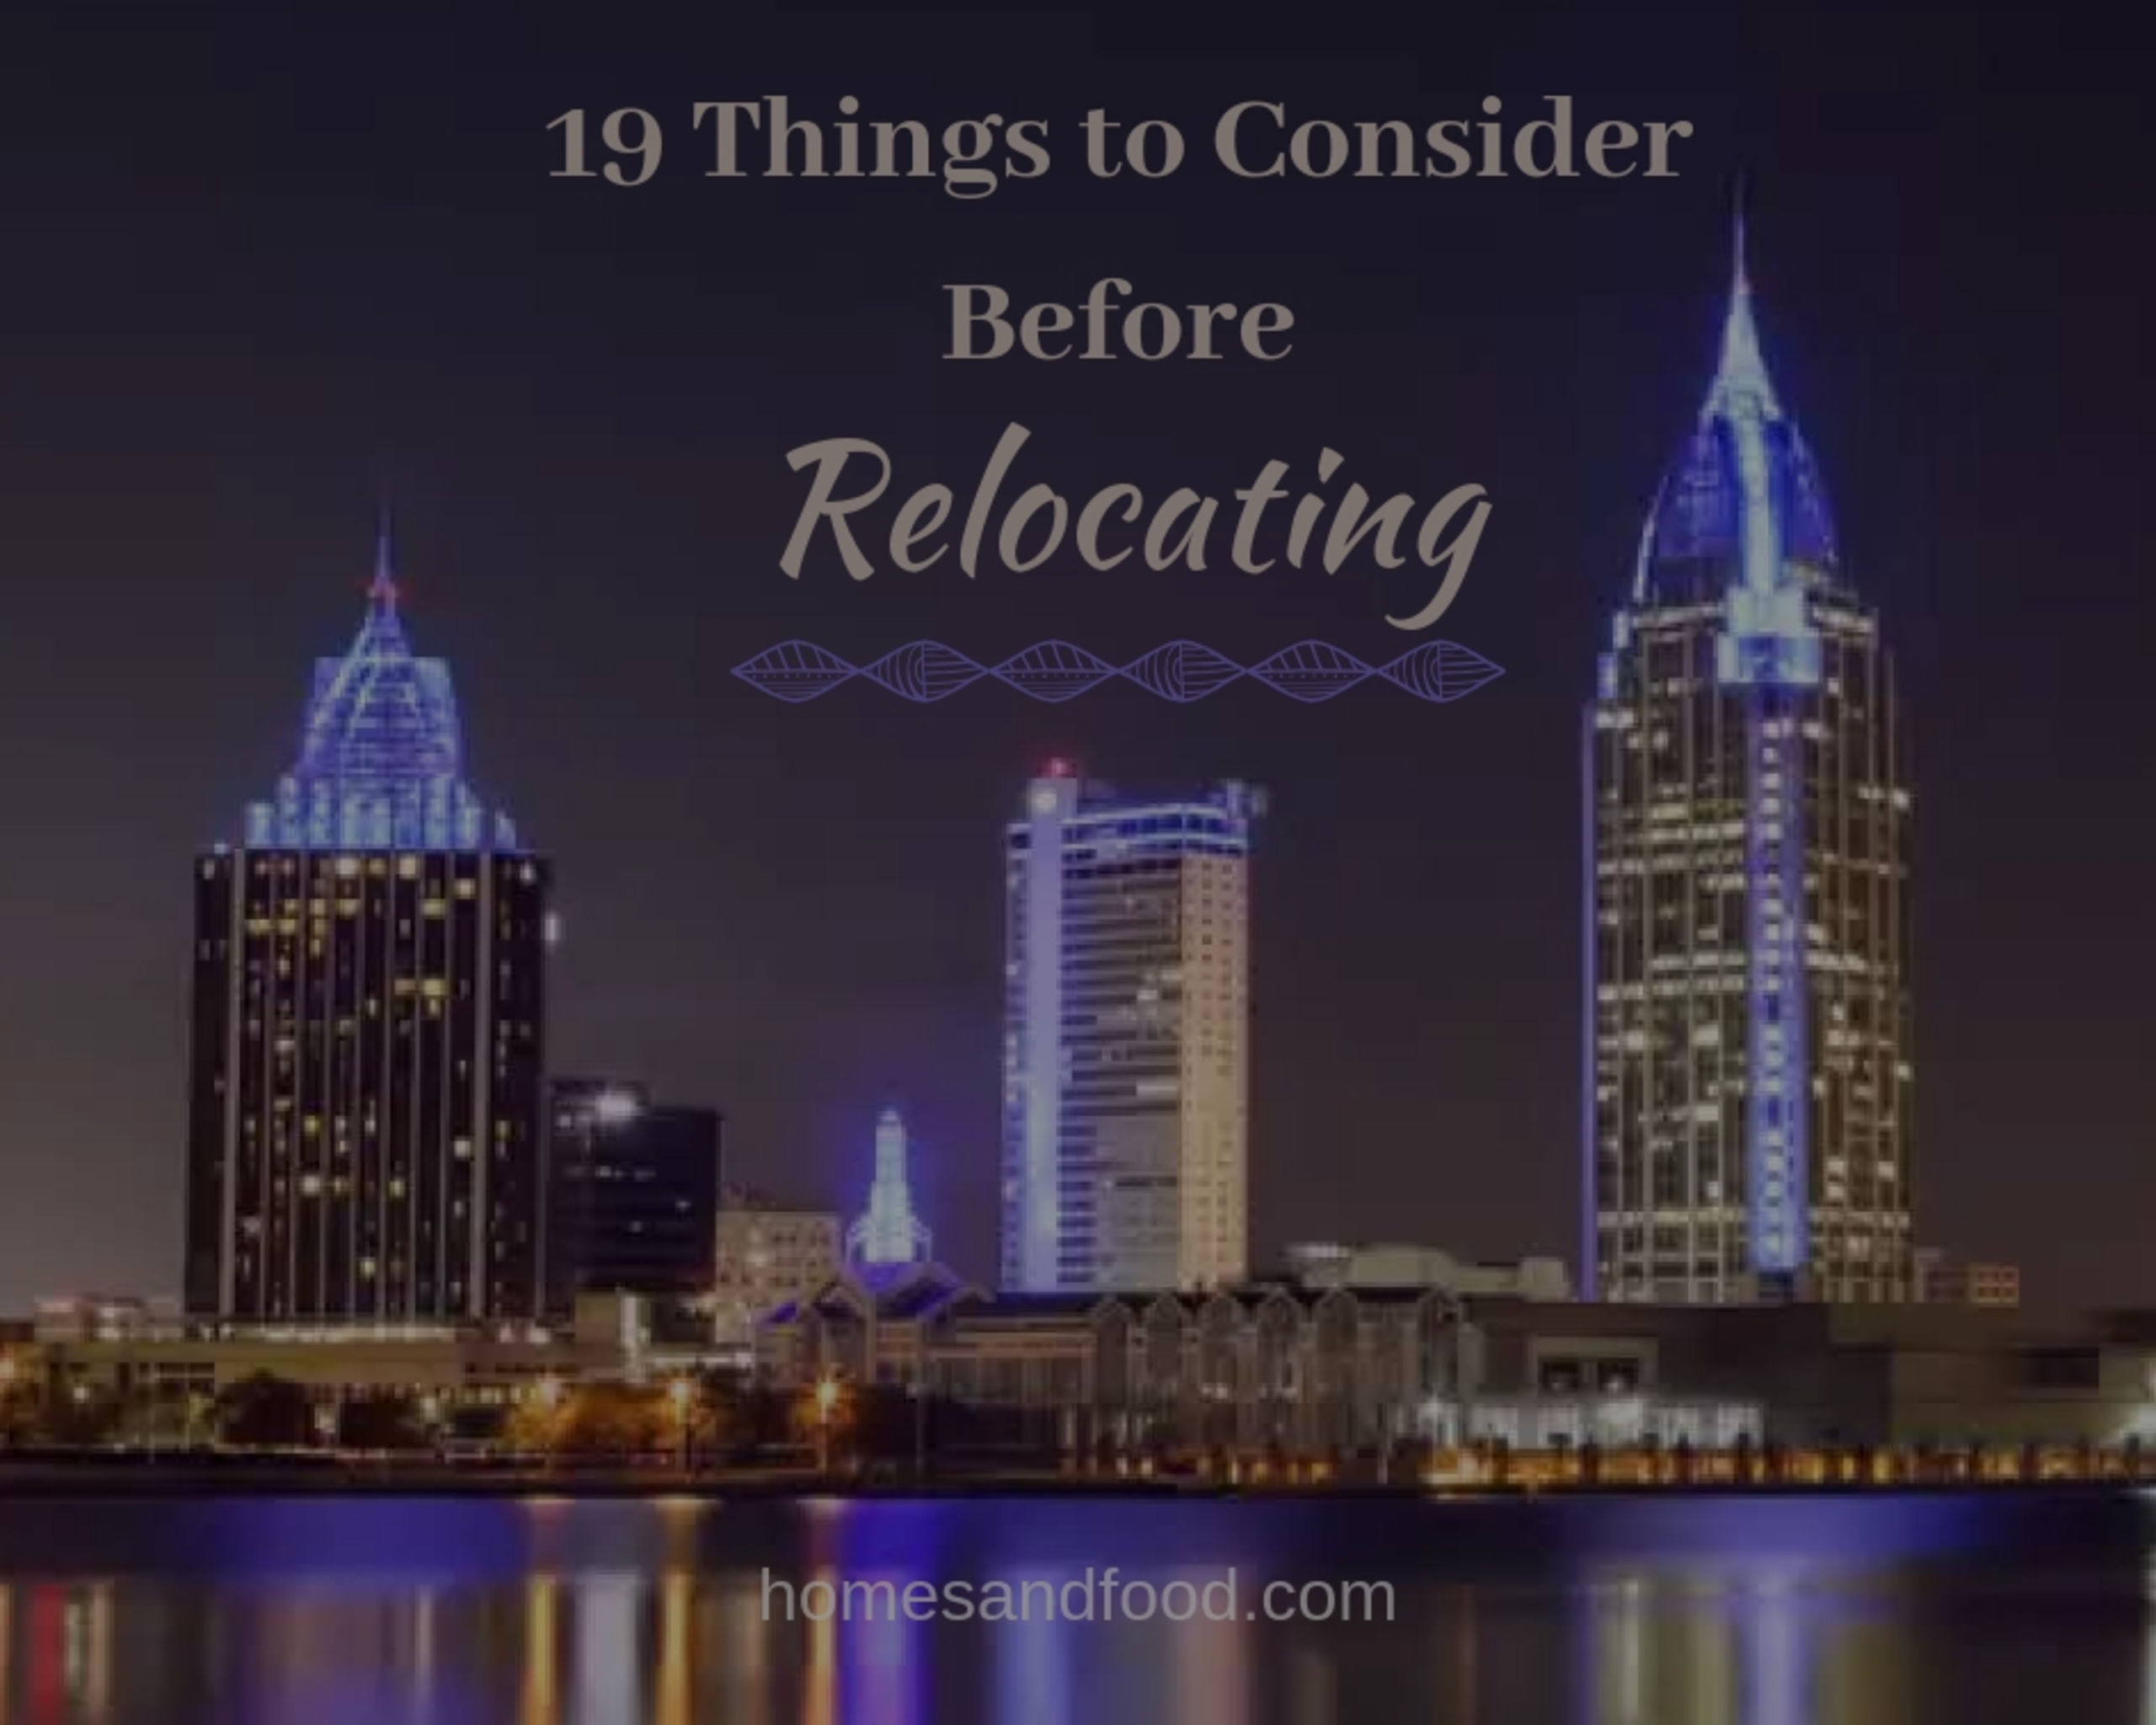 19 Things to Consider Before Relocating